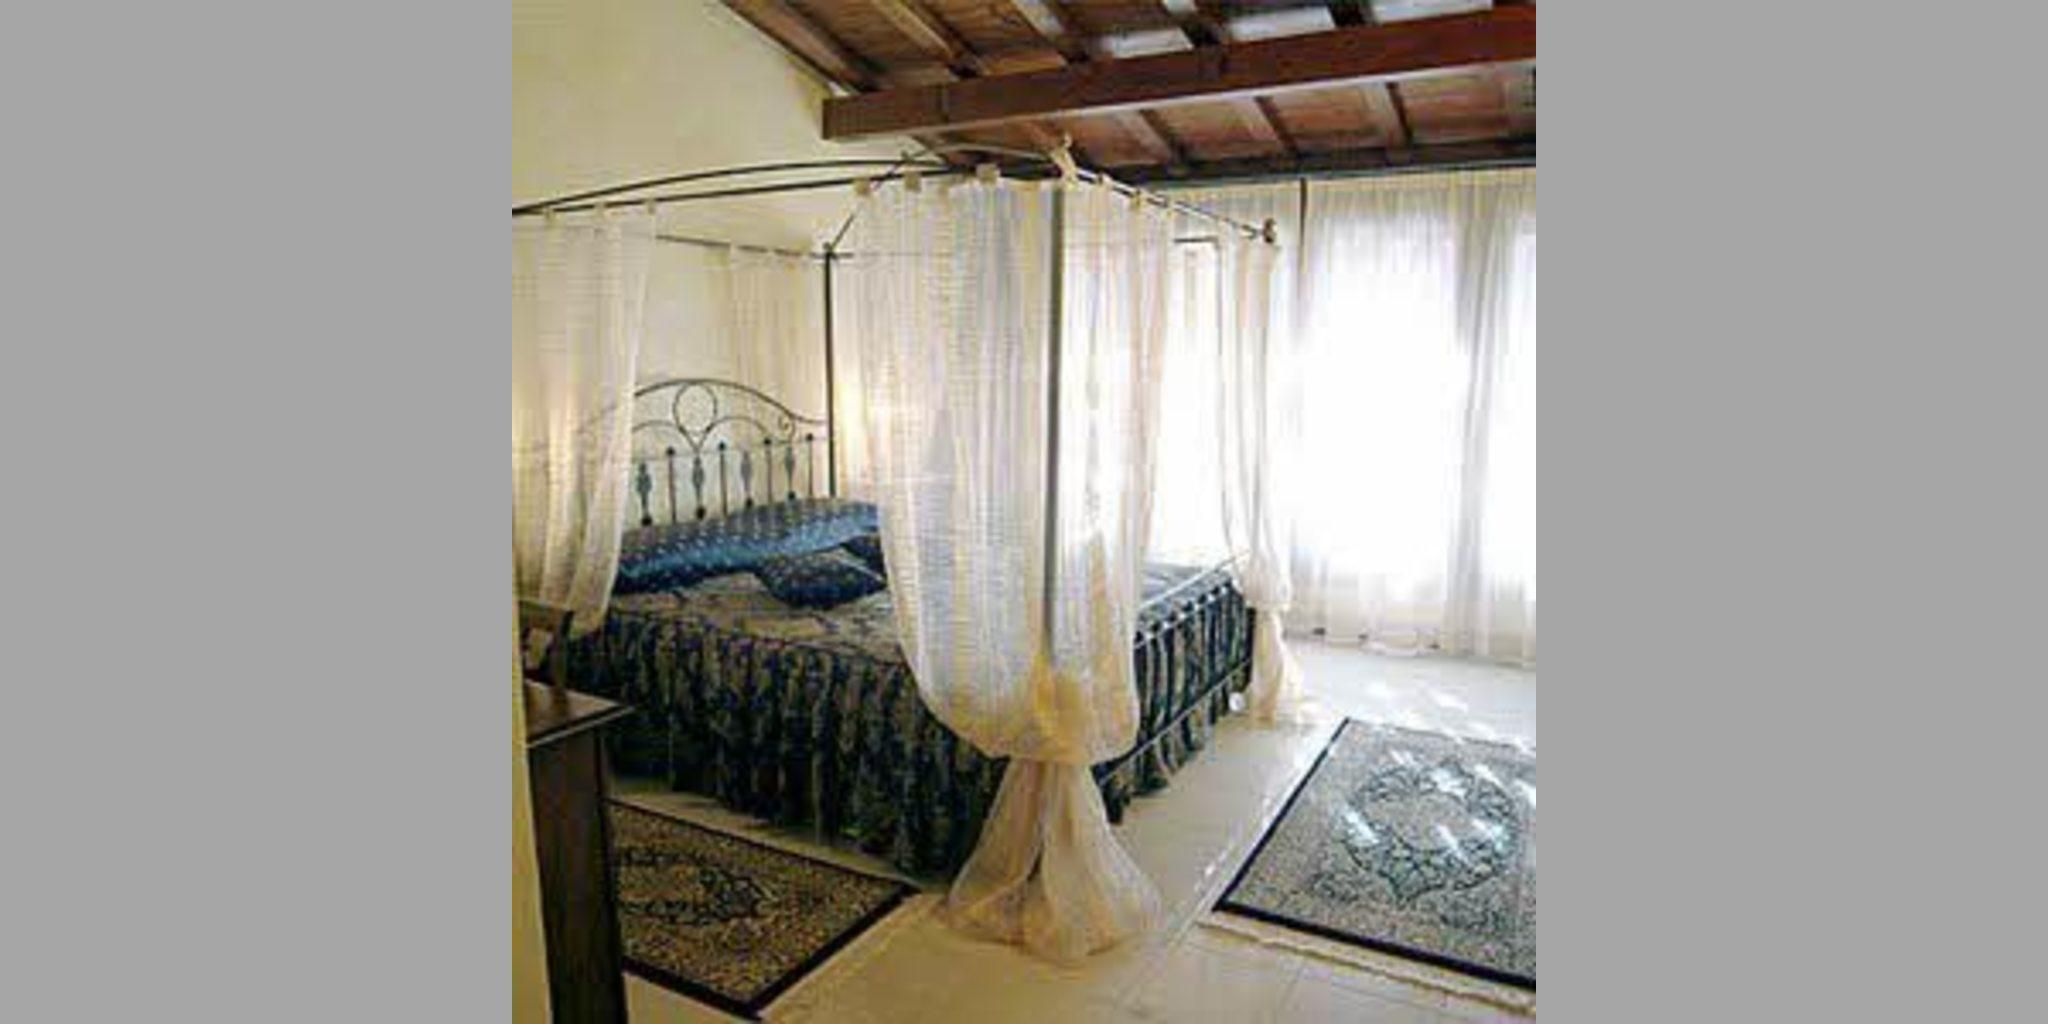 Bed & Breakfast Soave - San Lorenzo_